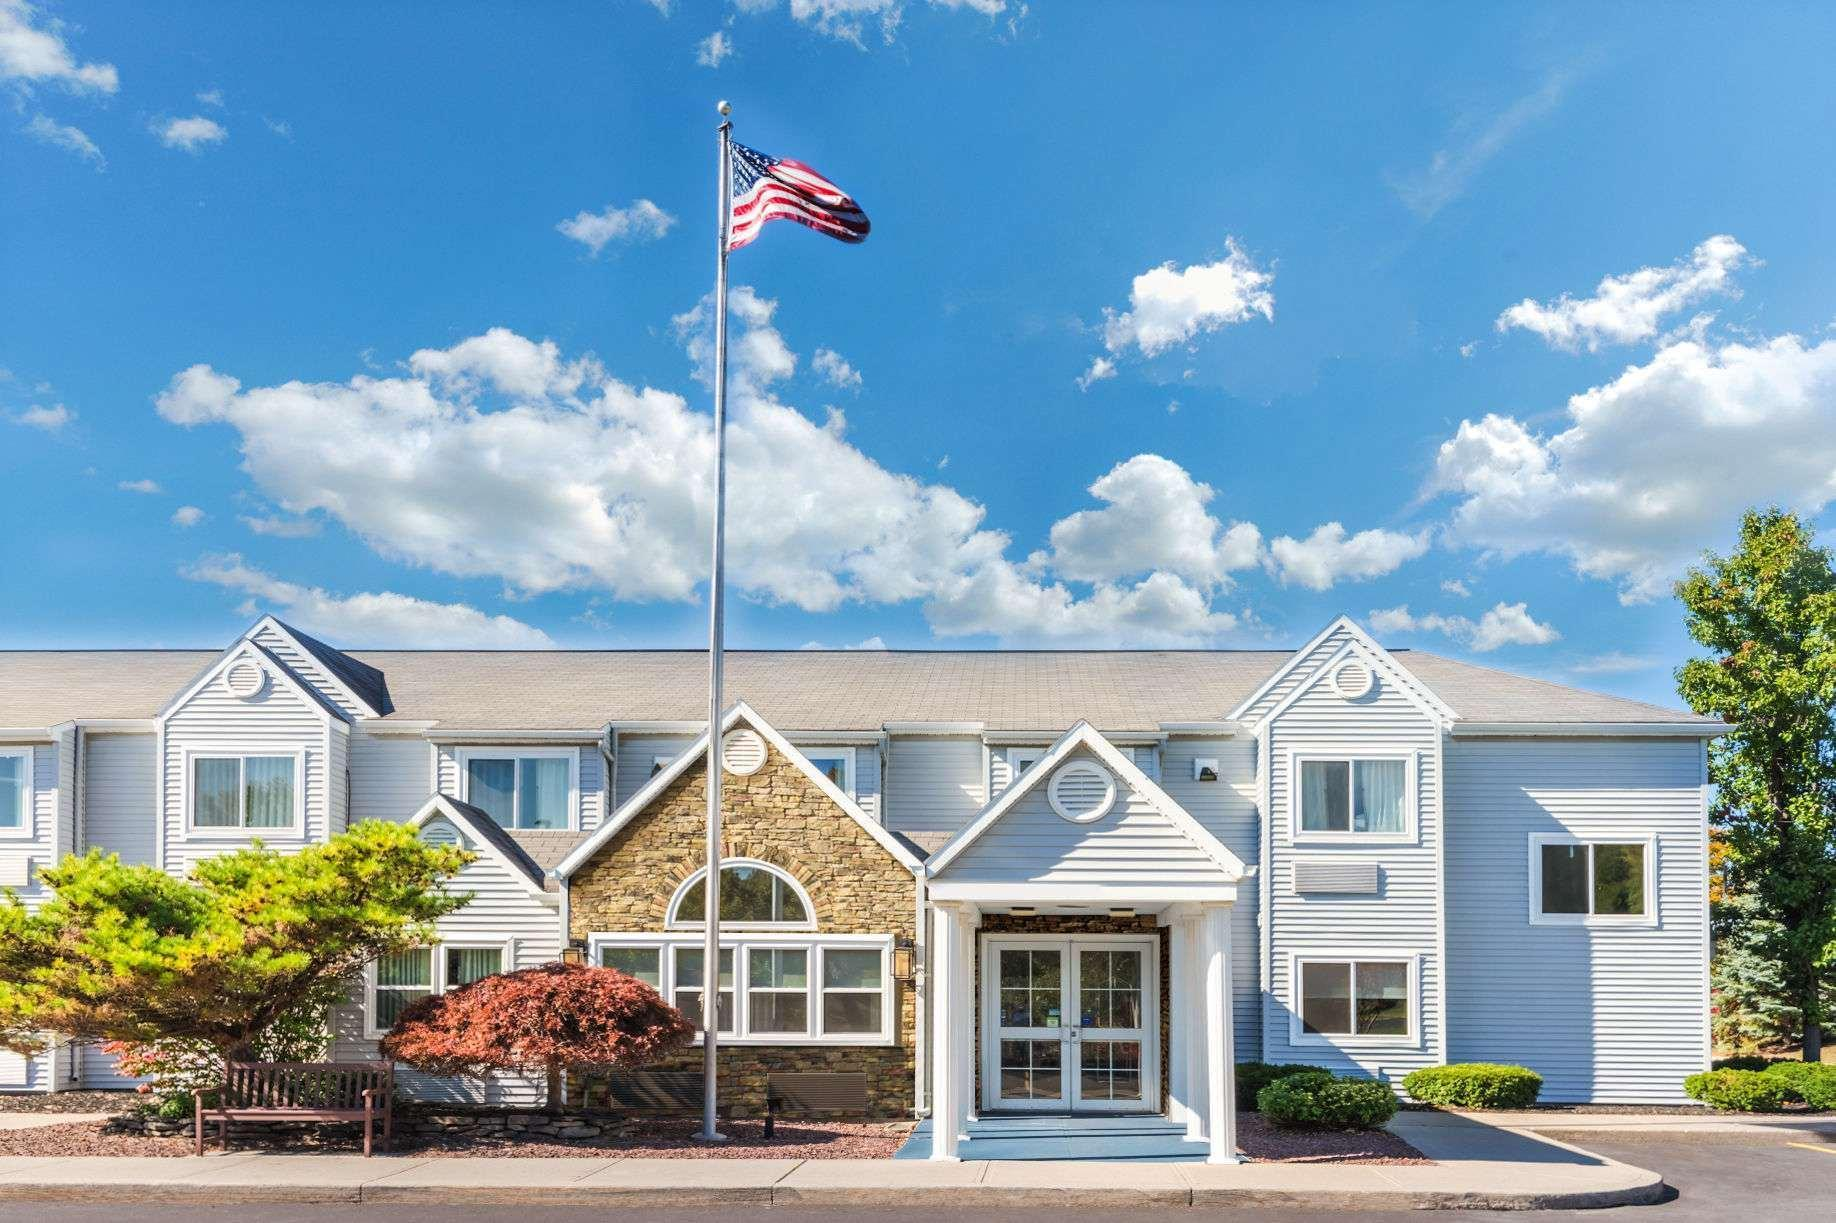 Microtel Inn And Suites By Wyndham Victor Rochester